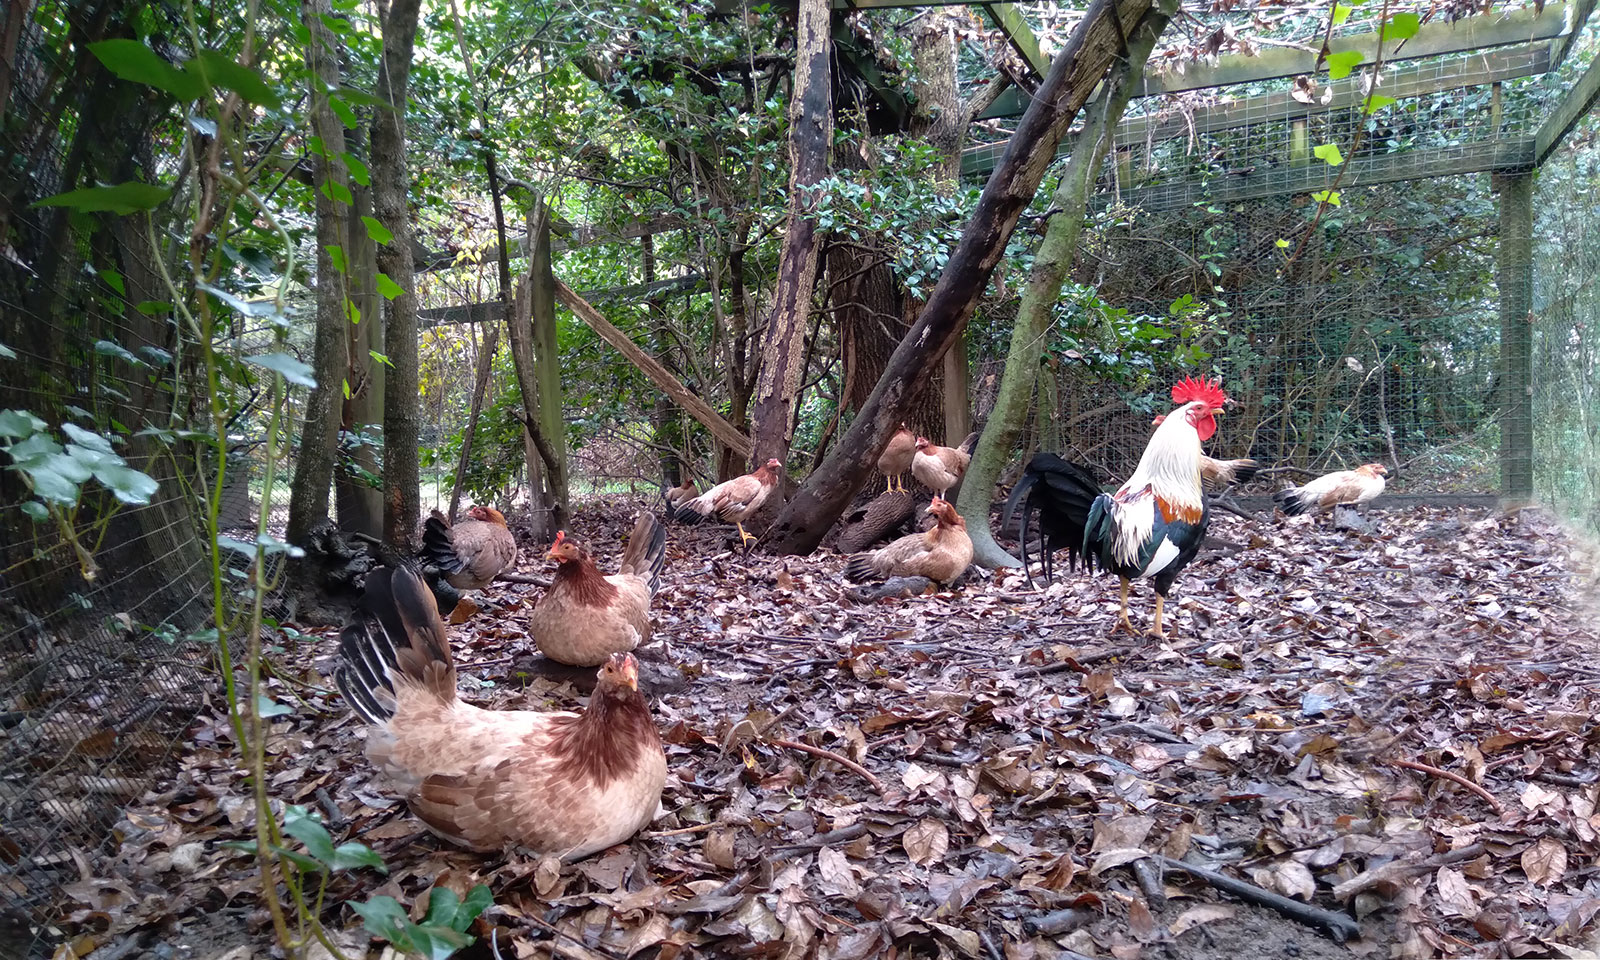 Kahlua the rooster with hens